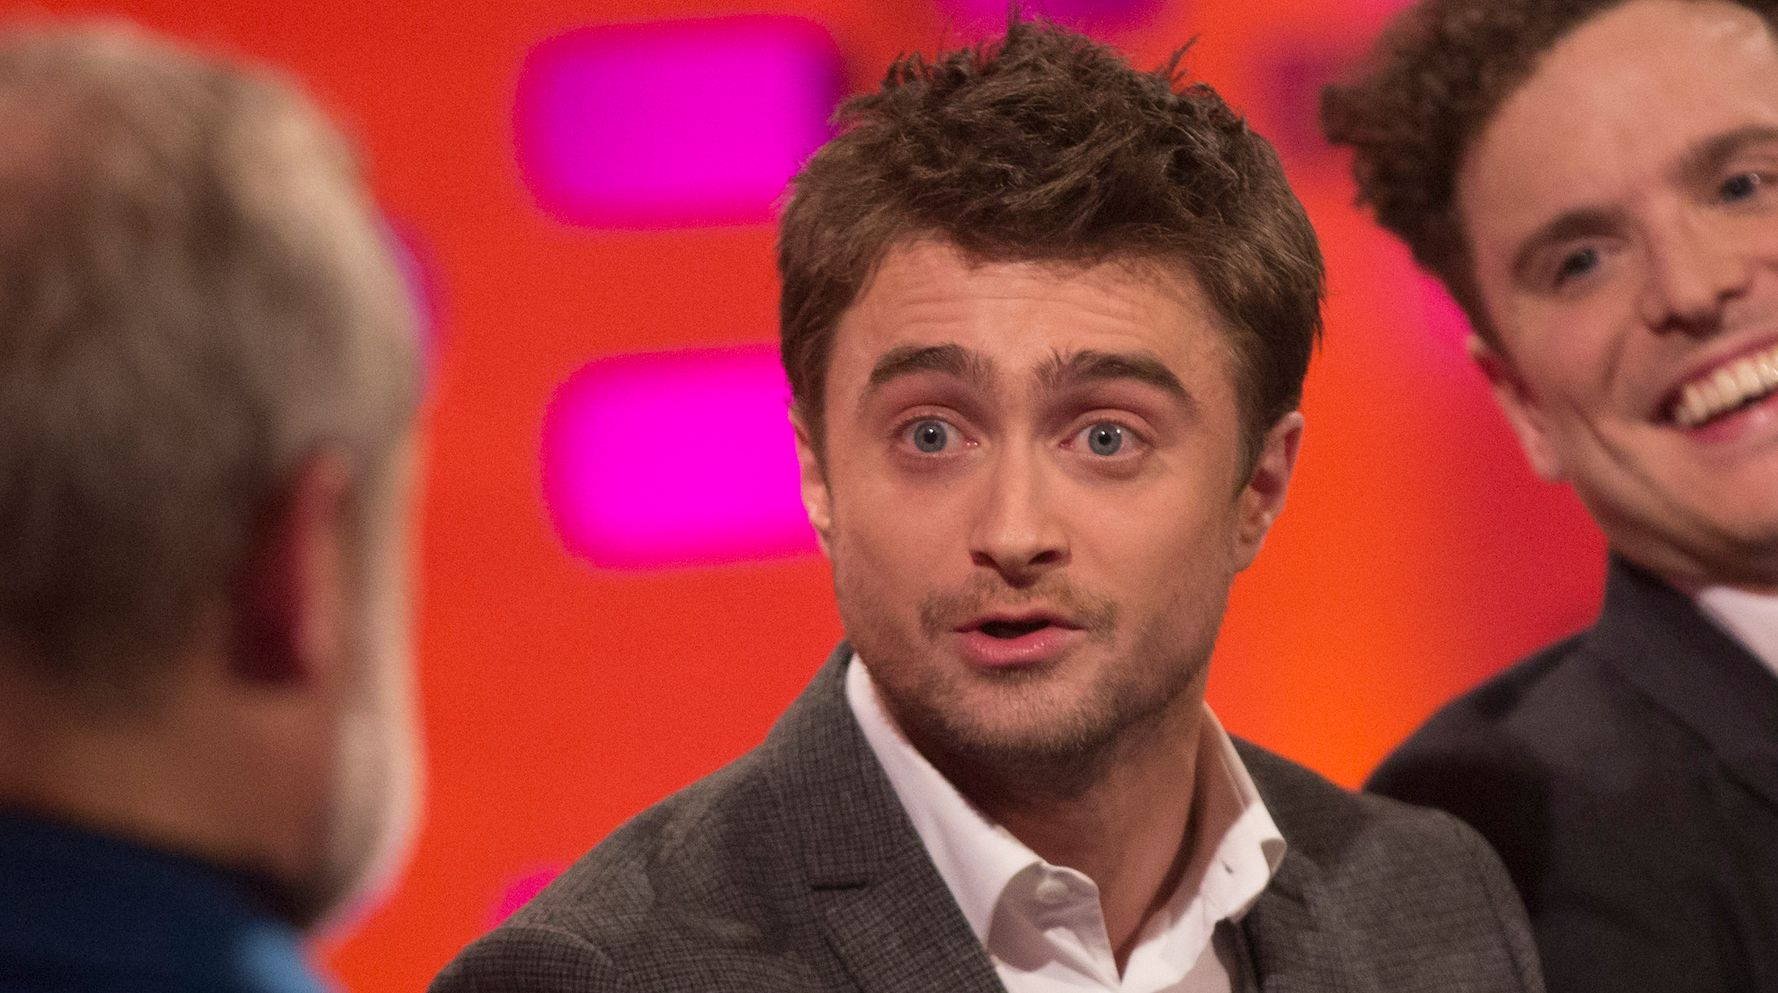 The One Question You Don't Want To Ask Daniel Radcliffe | HuffPost